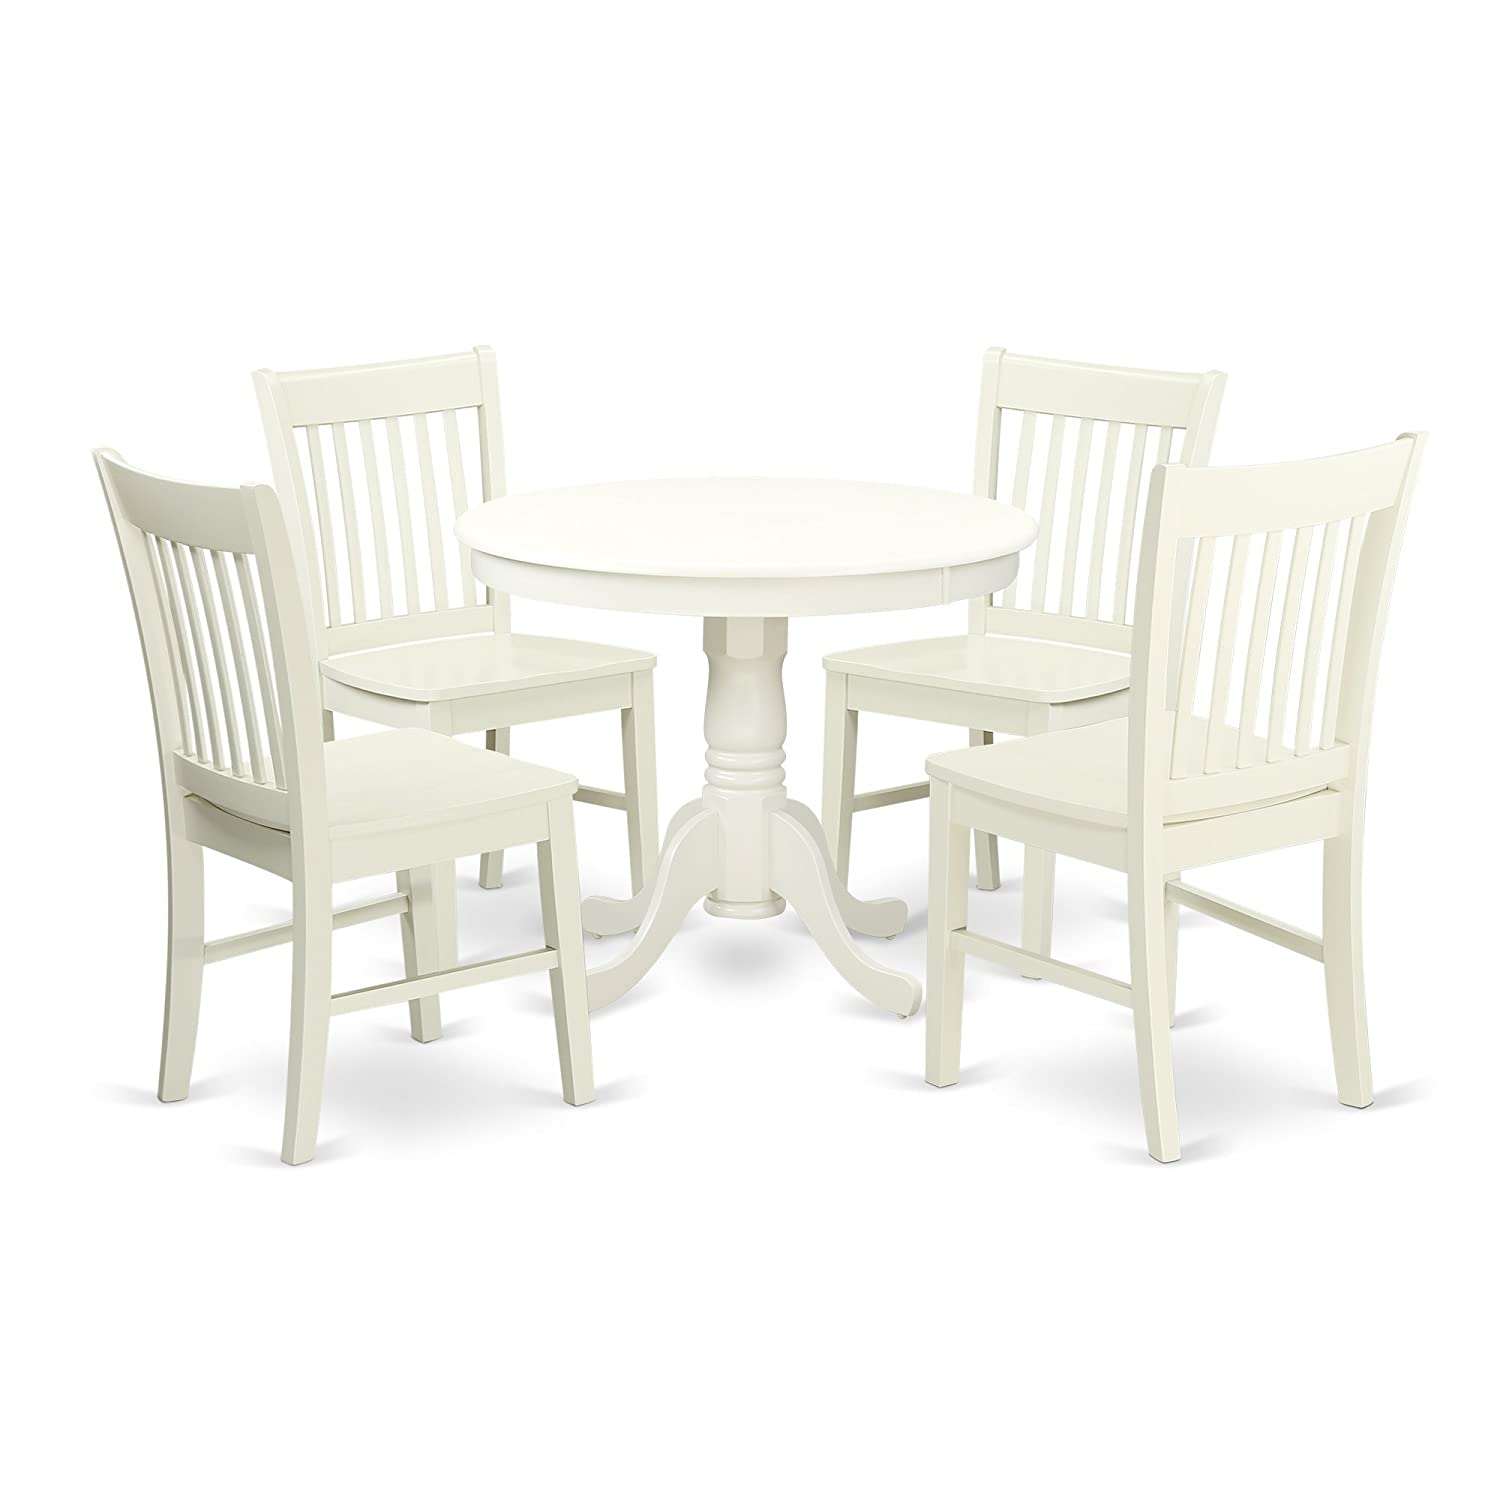 ANNO5-LWH-W 5 Pc Kitchen table set with a Dining Table and 4 Wood Seat Kitchen Chairs in Linen White